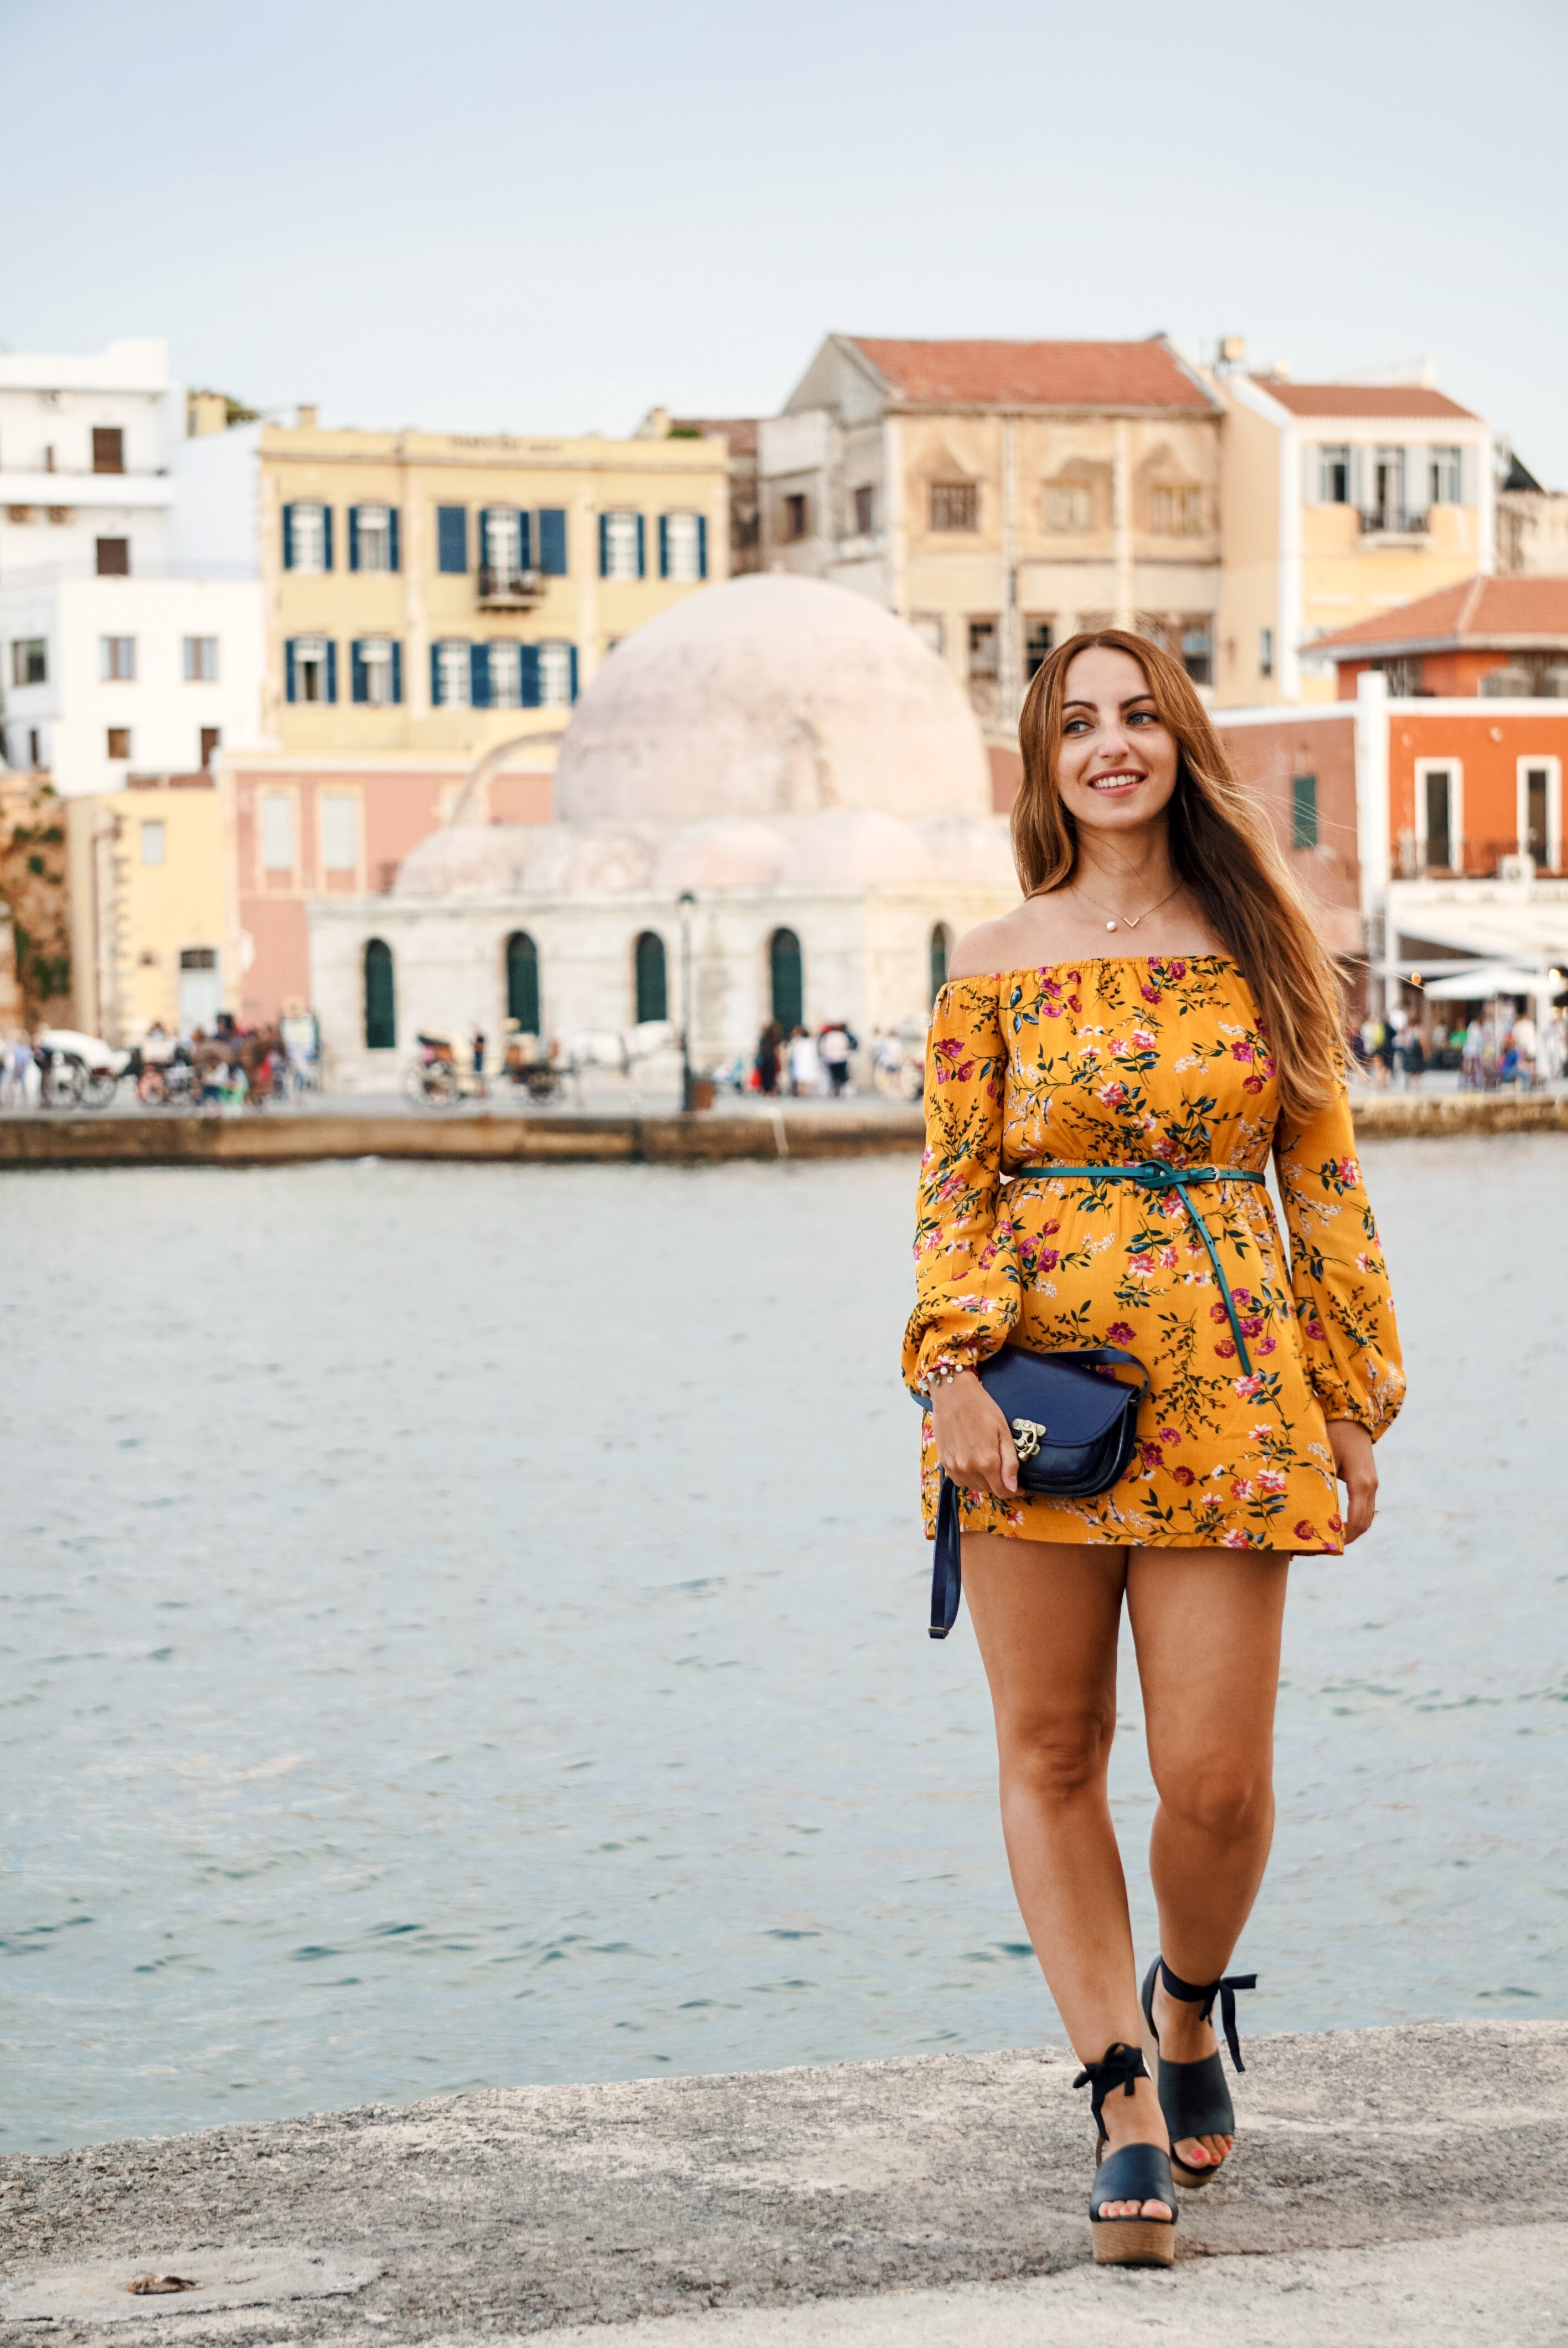 Chania-Crete-Fashionblogger-Outfit-Post-2